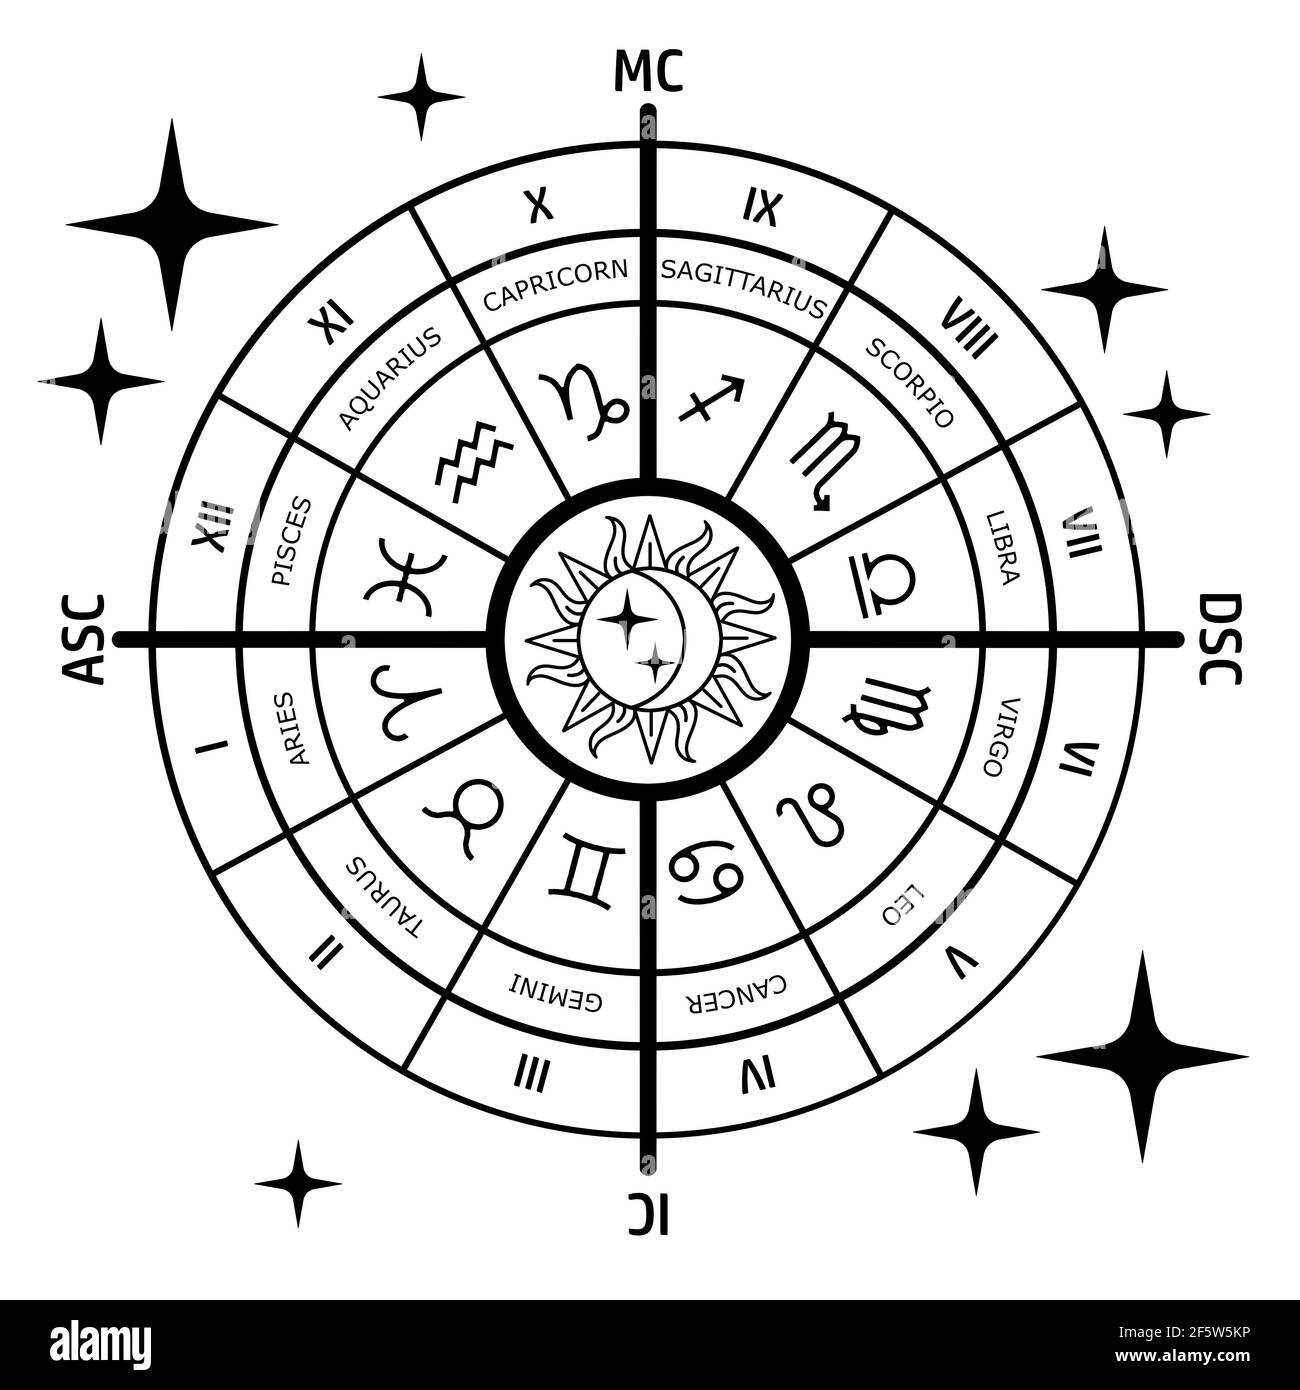 Astrology Chart High Resolution Stock Photography and Images   Alamy